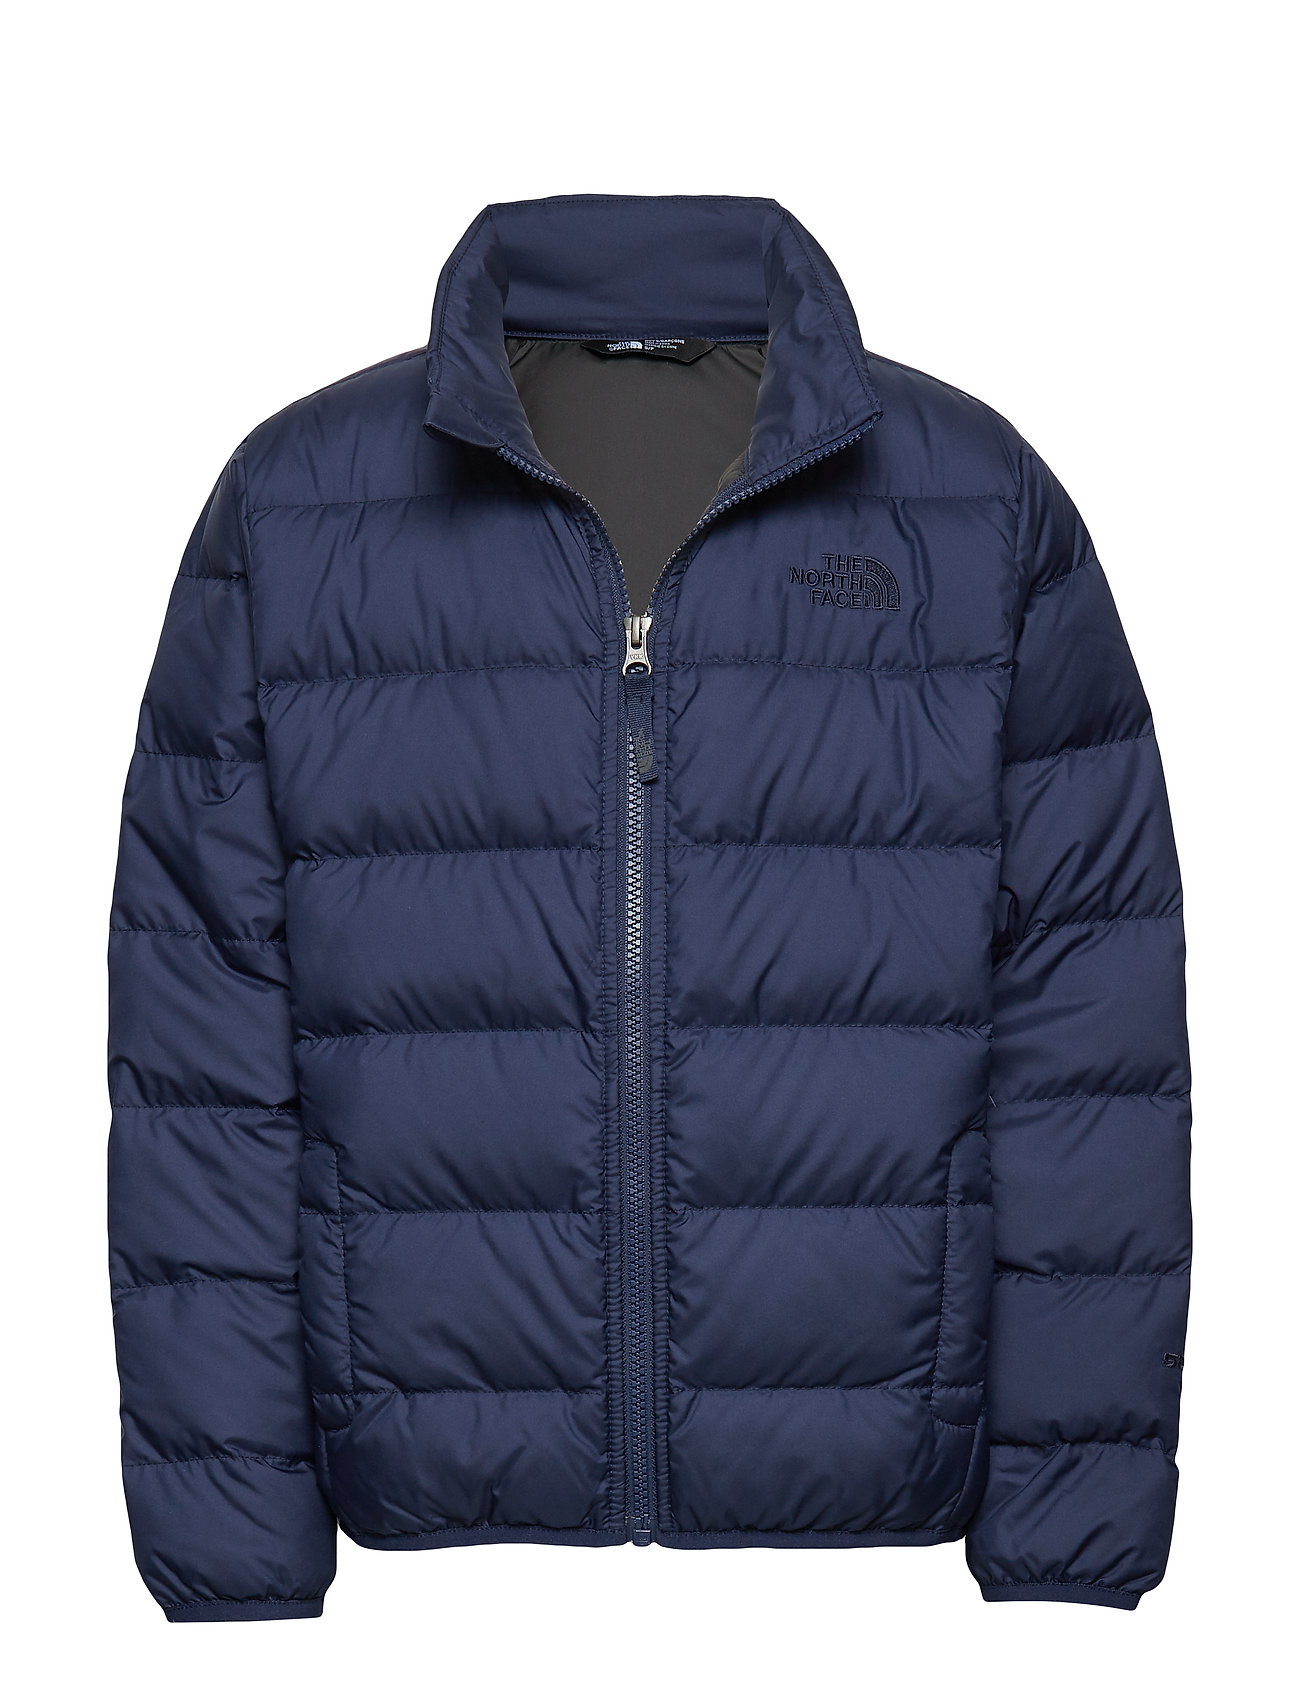 The North Face B ANDES JACKET - MONTAGUE BLUE